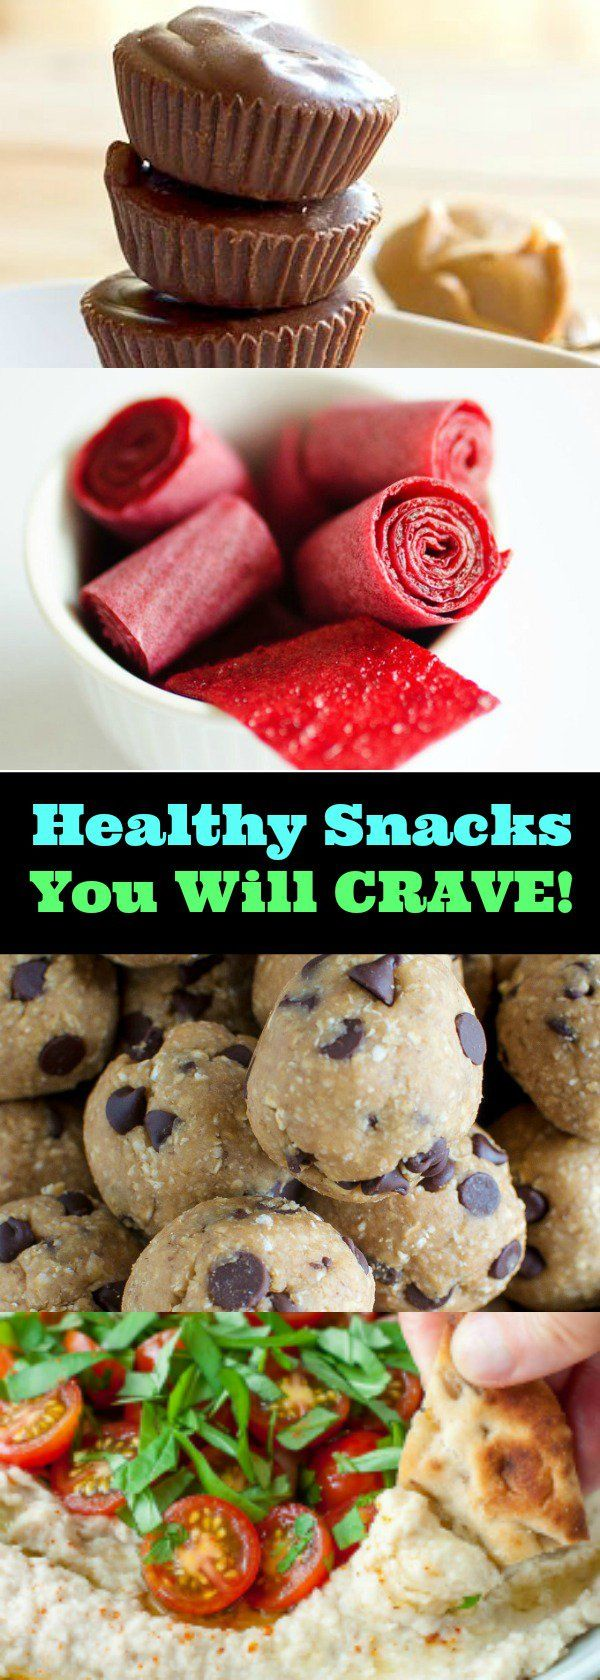 Easy, Healthy Snacks You Will CRAVE!